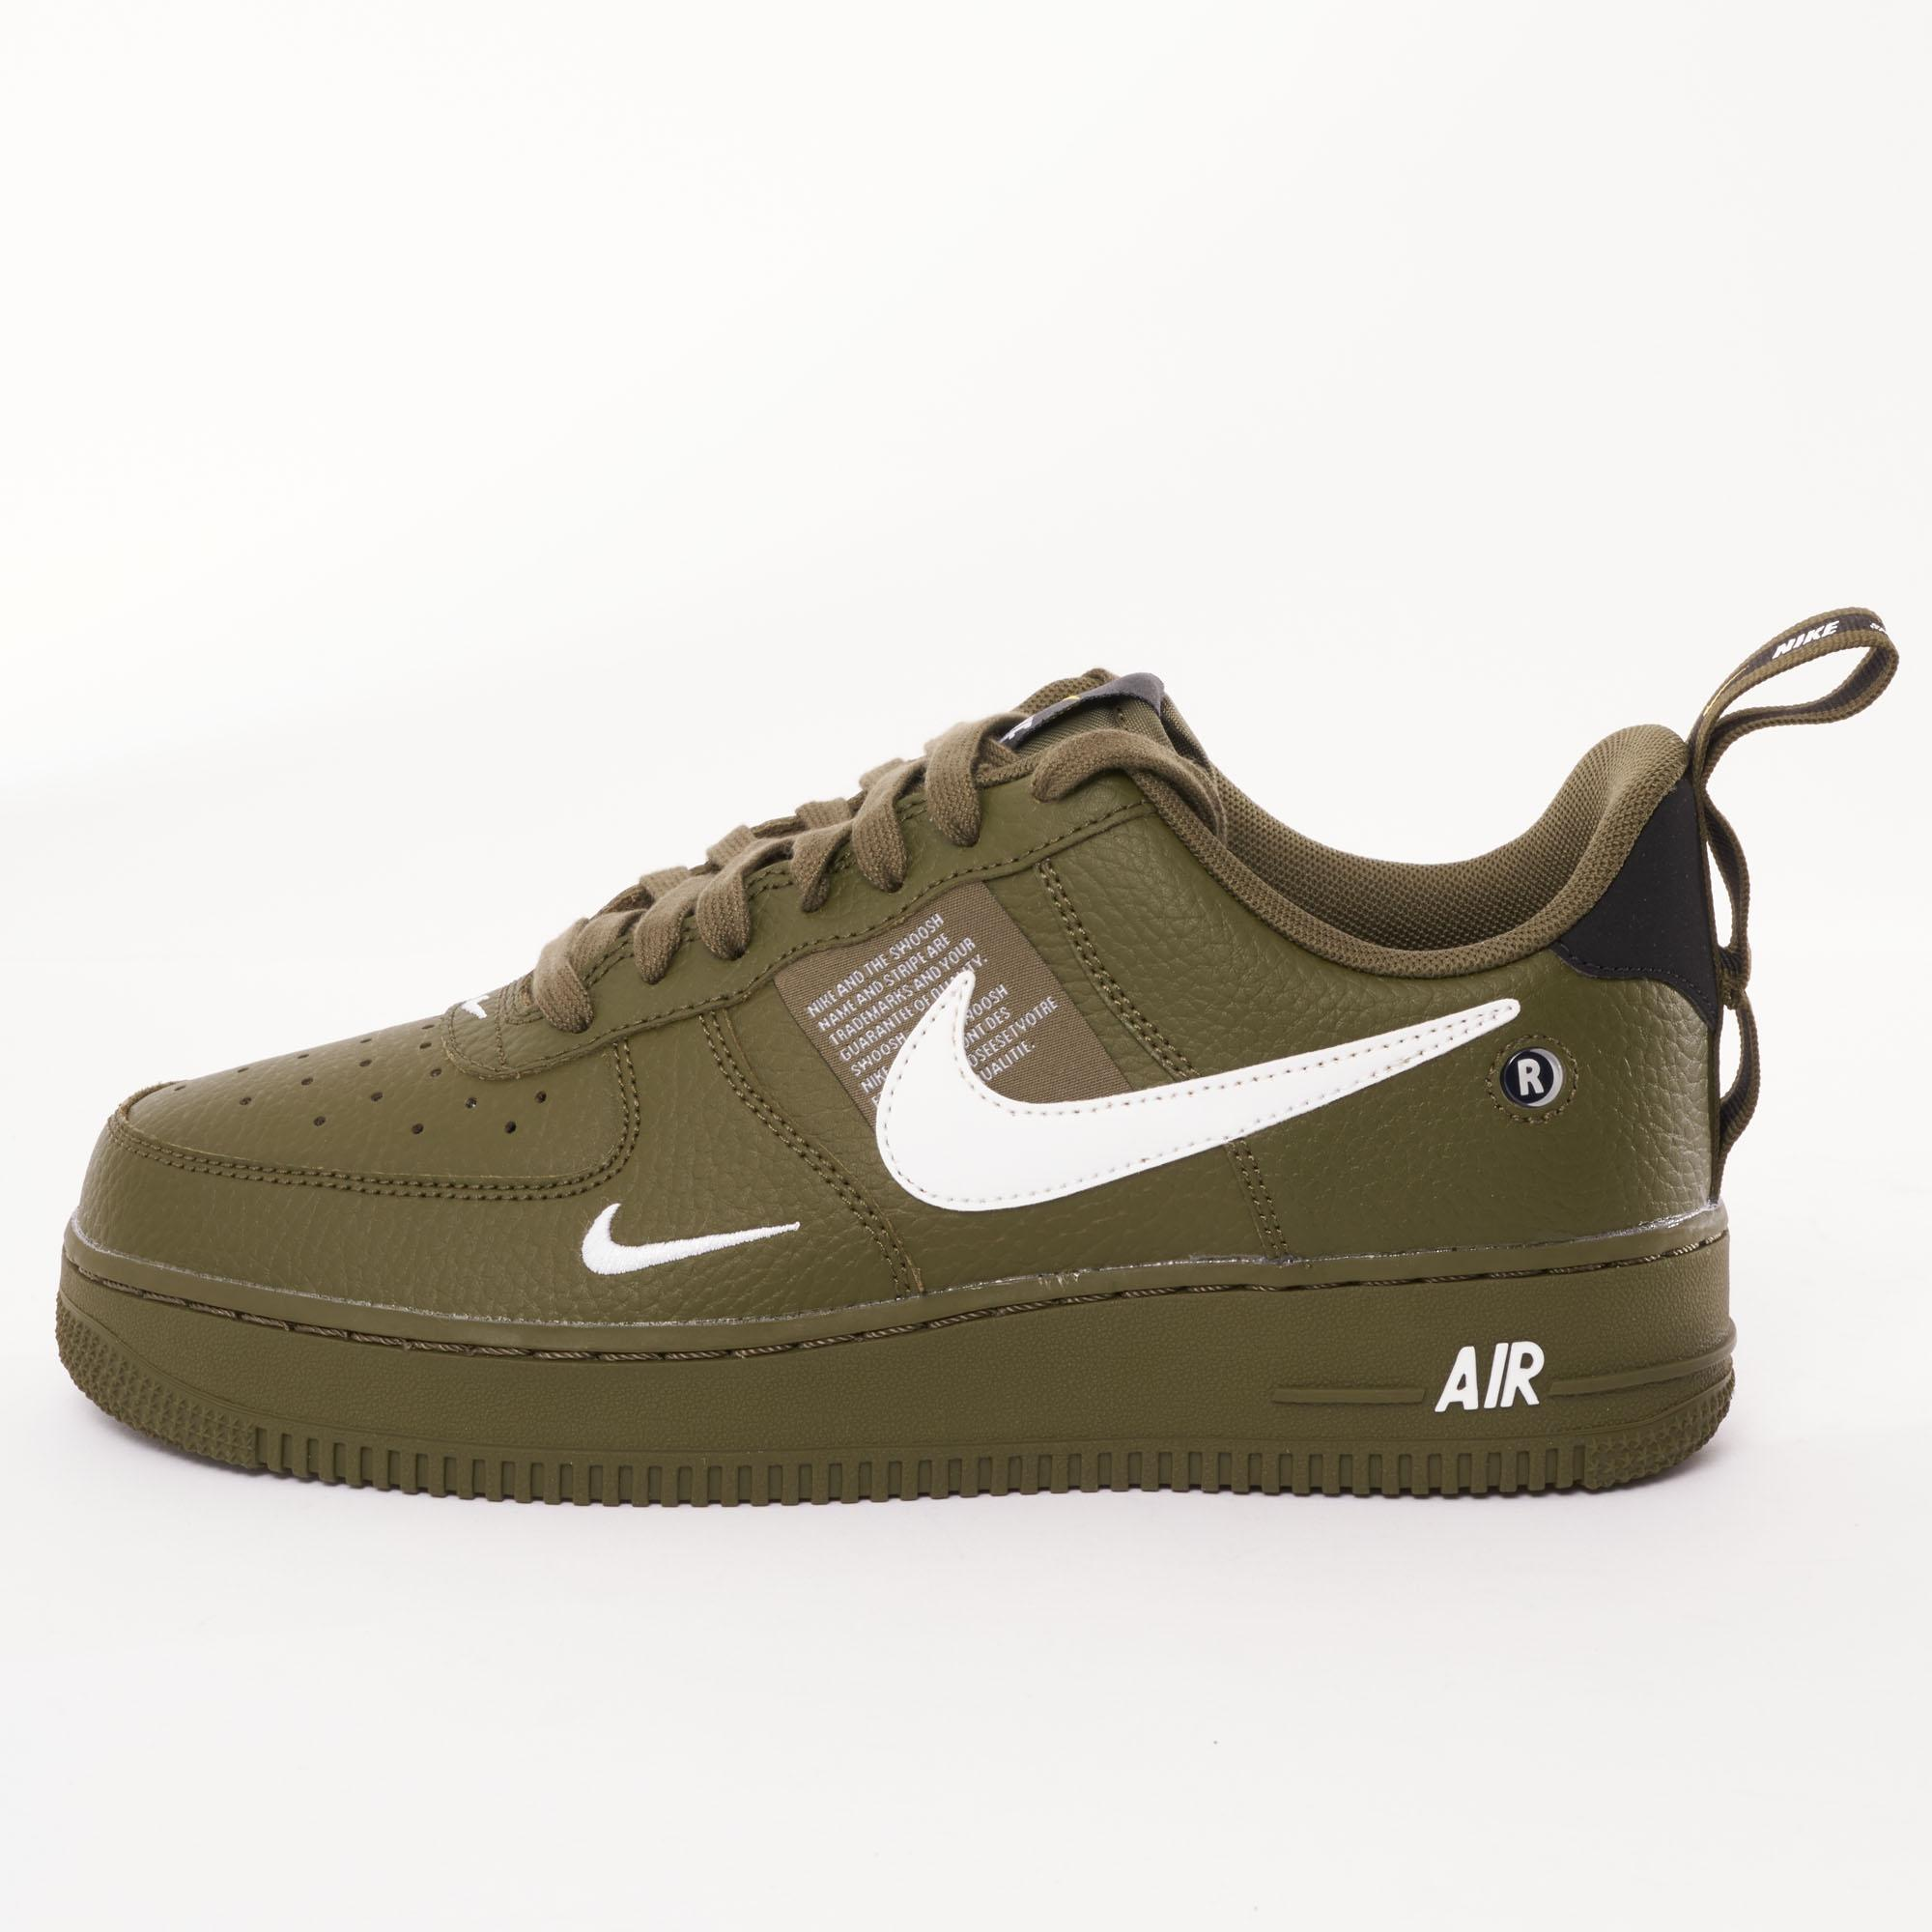 6359b3057a99d Lyst - Nike Air Force 1 Utility Trainers in Green for Men